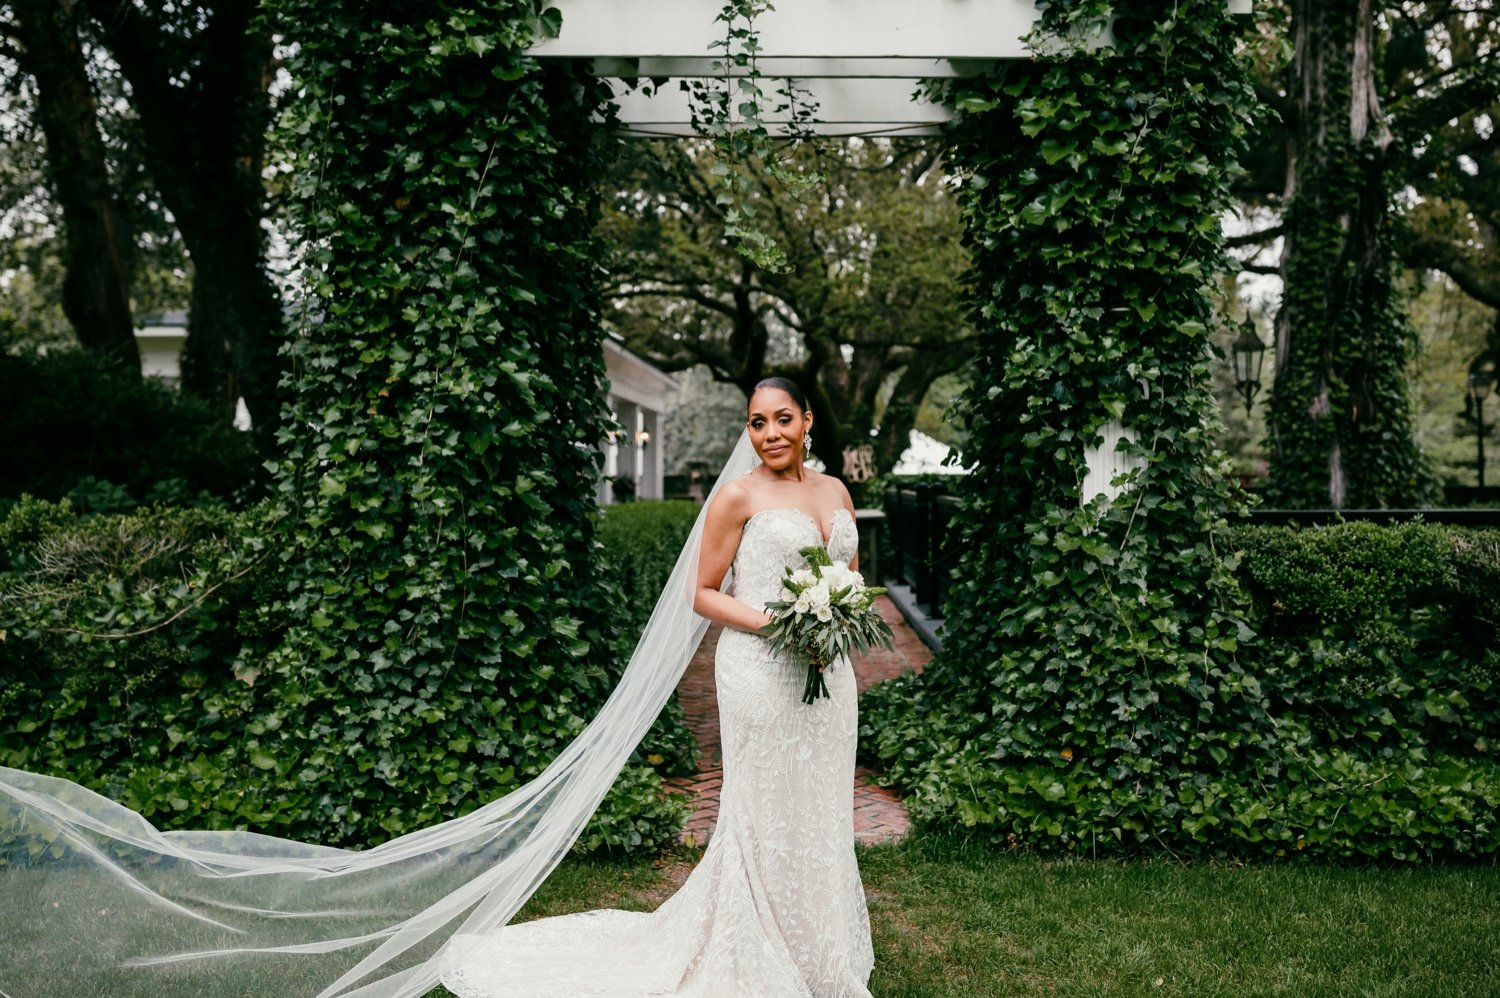 photo of the bride in her wedding dress holding bouquet of white flowers with greenery behind her